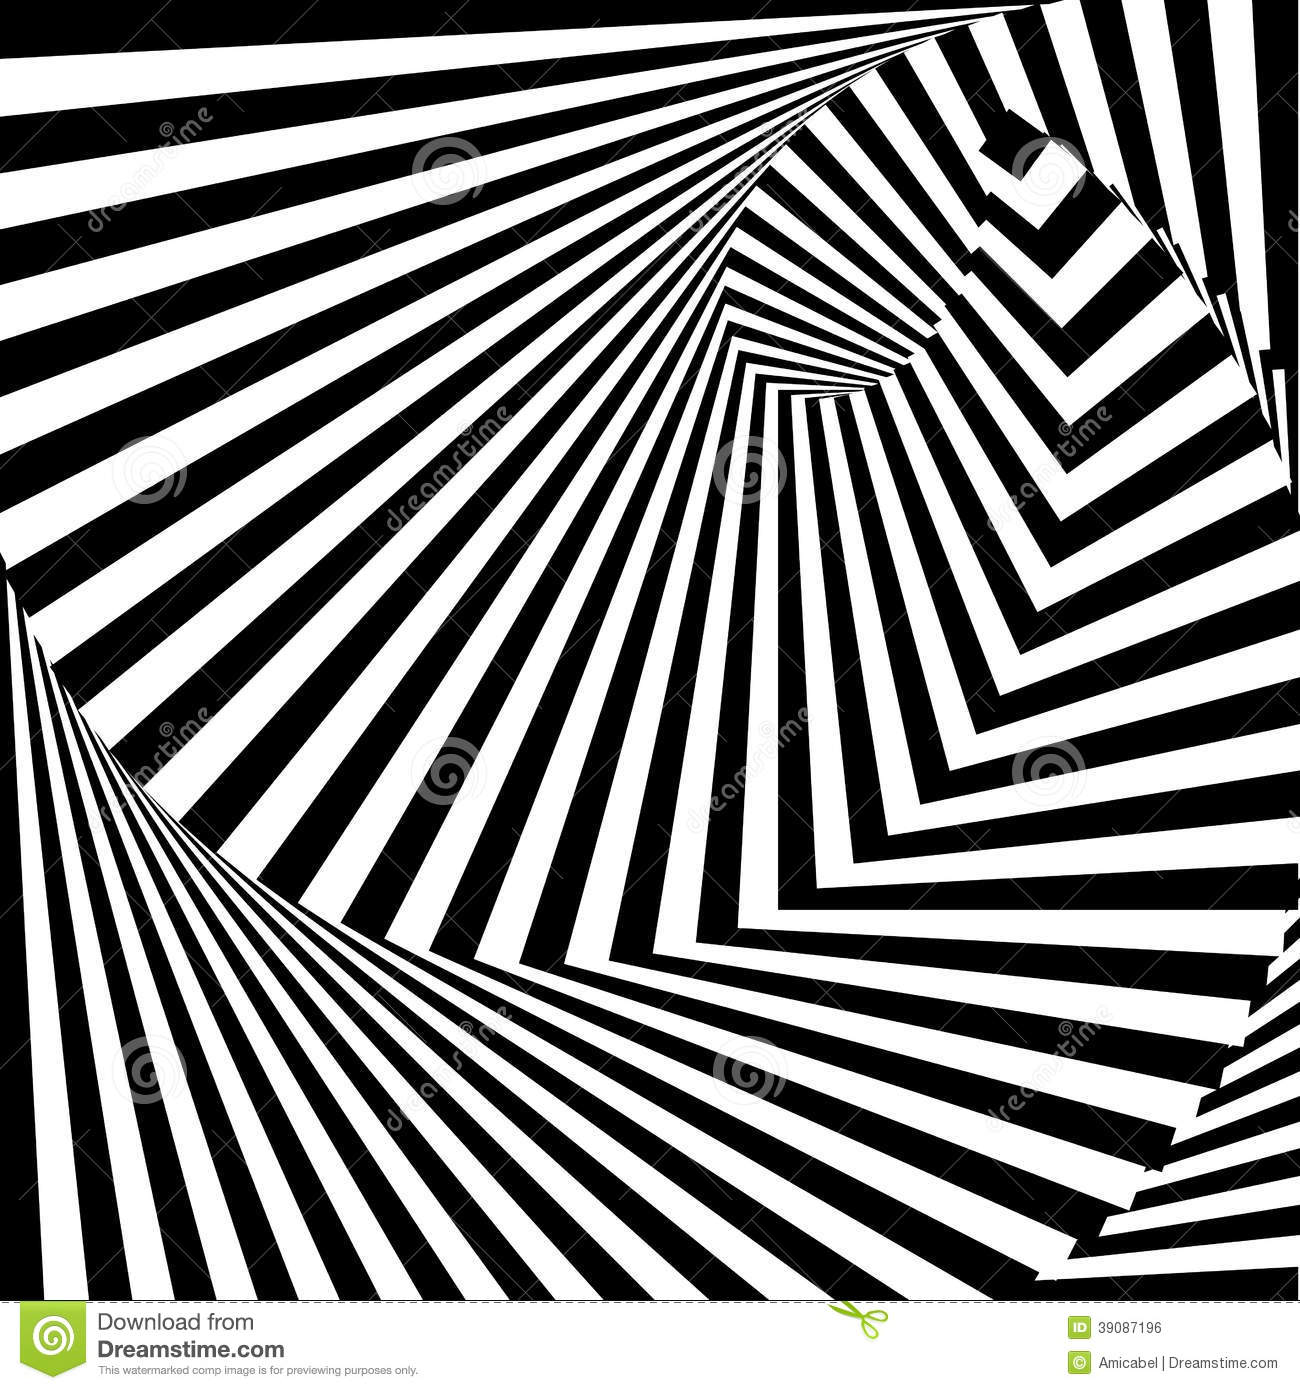 Line Art Movement : Design monochrome vortex illusion background stock vector